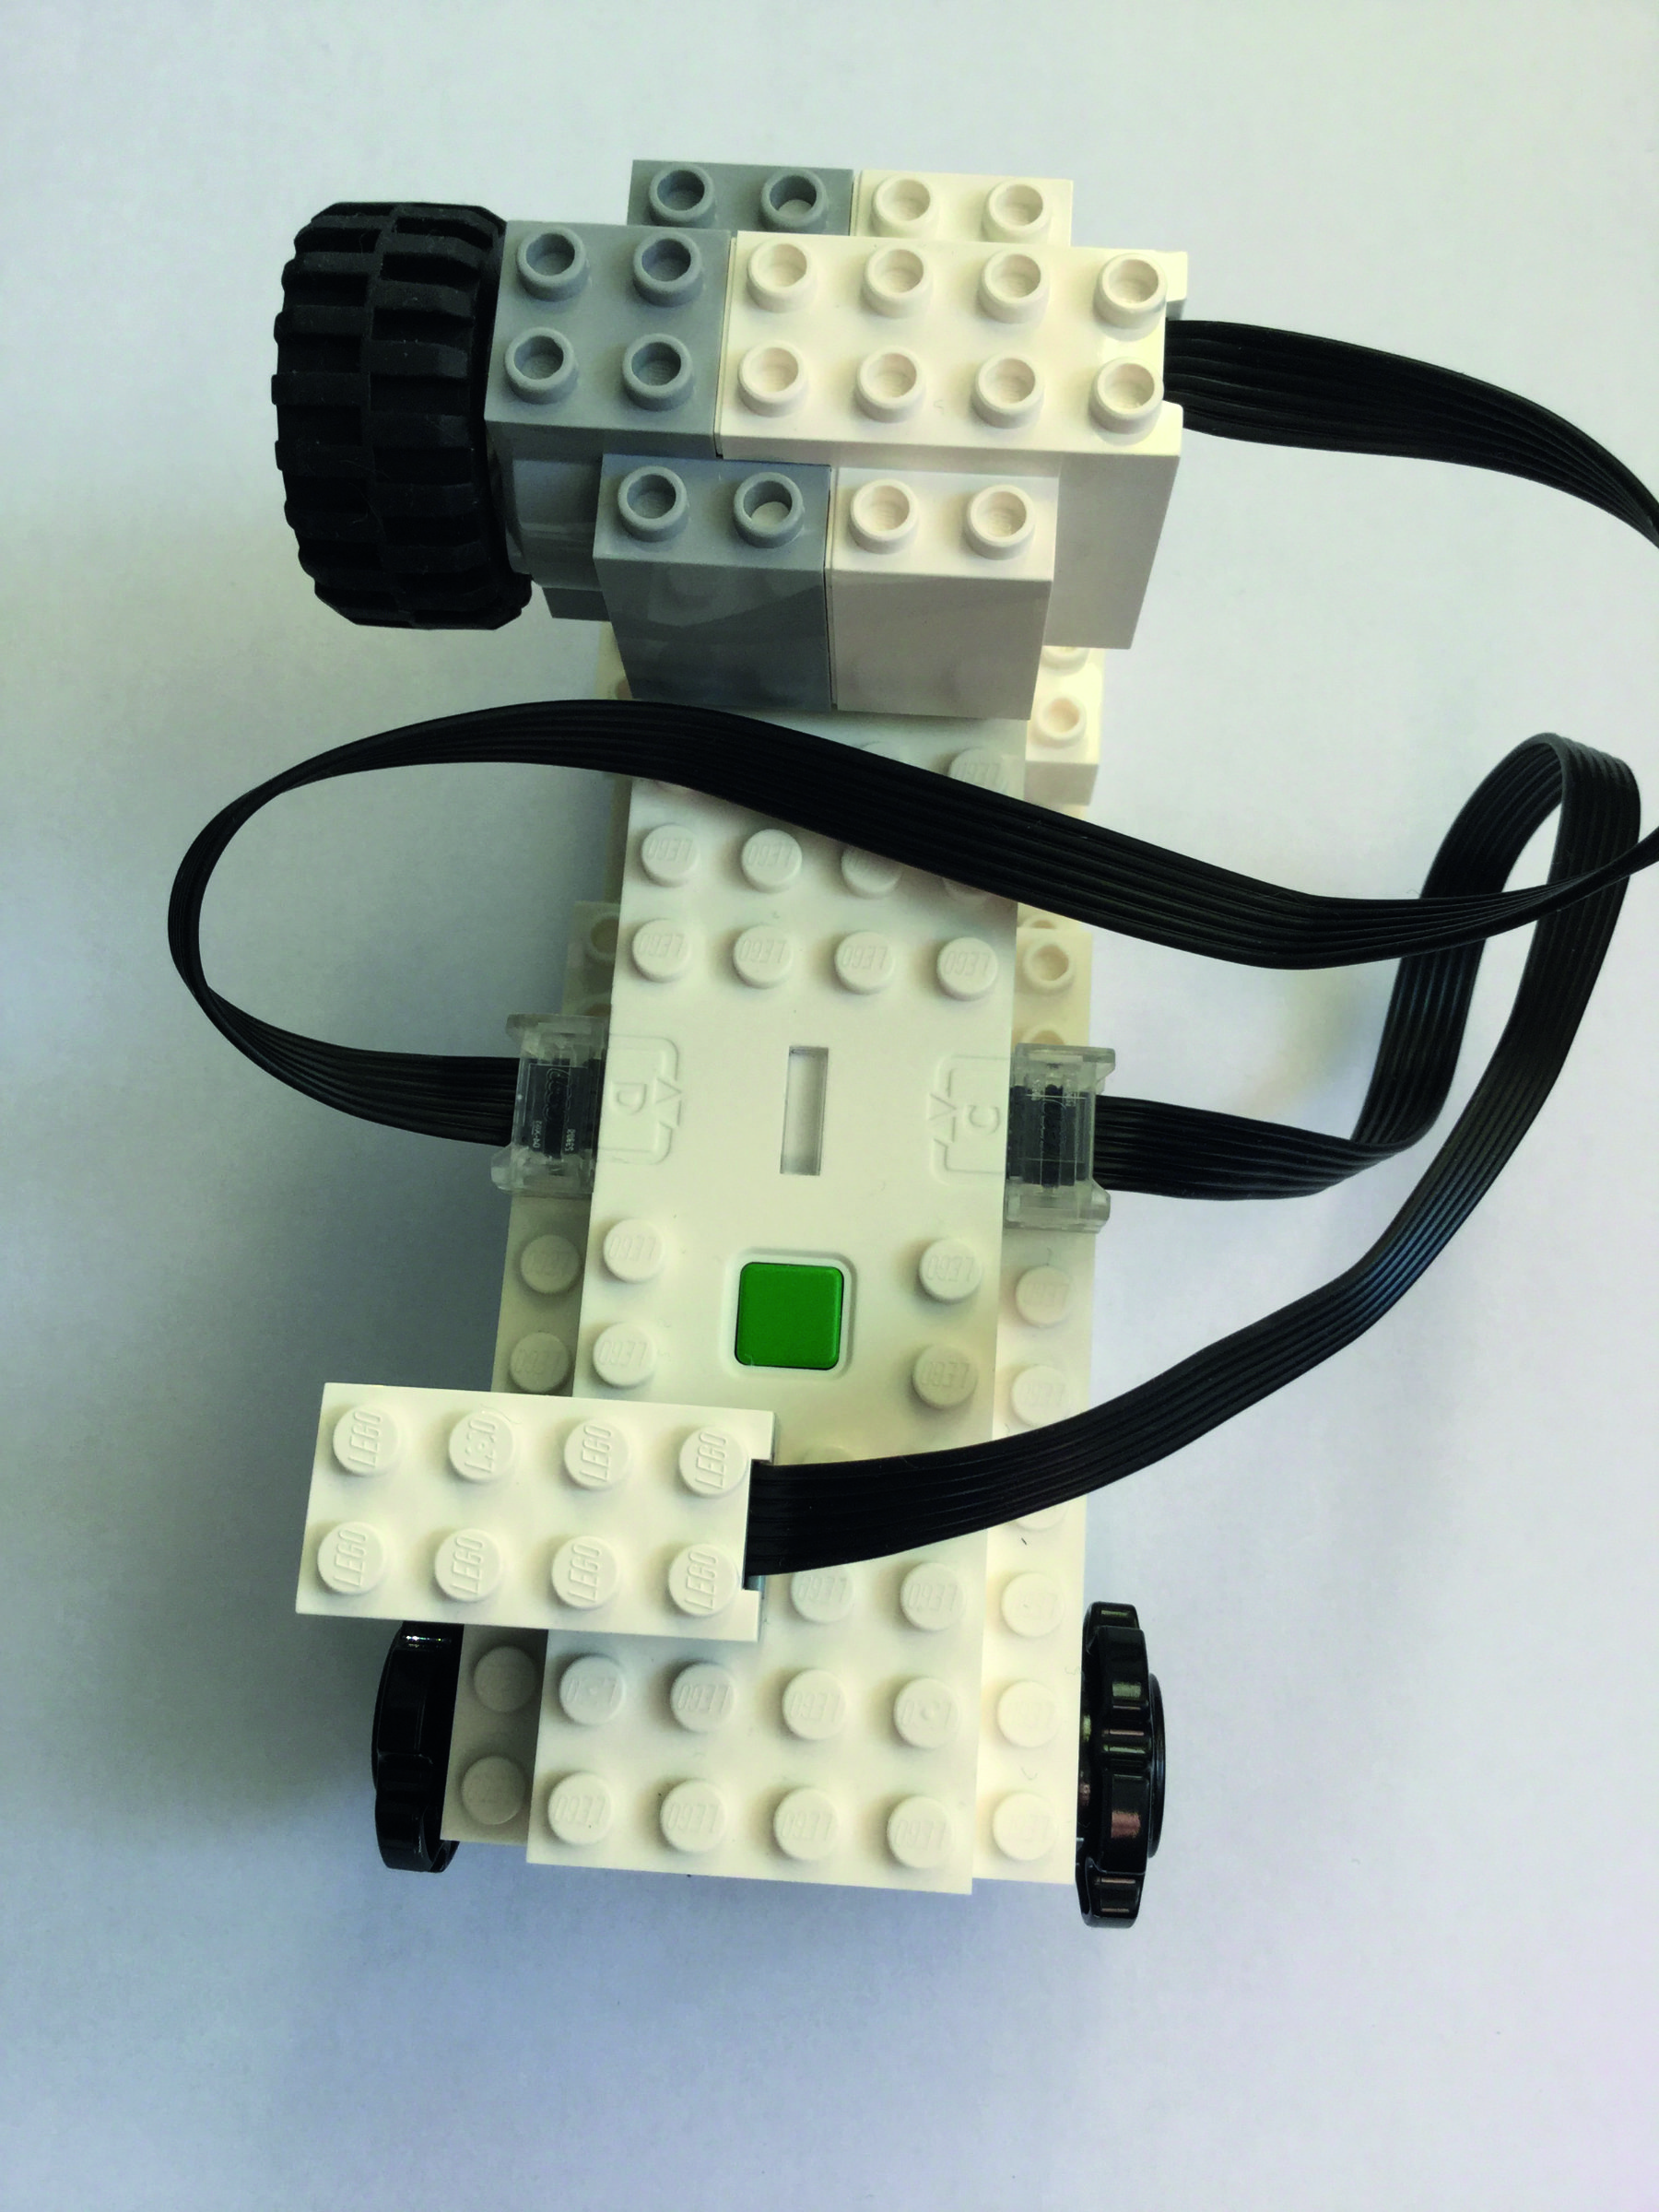 Hack Lego Boost with Raspberry Pi - The MagPi MagazineThe